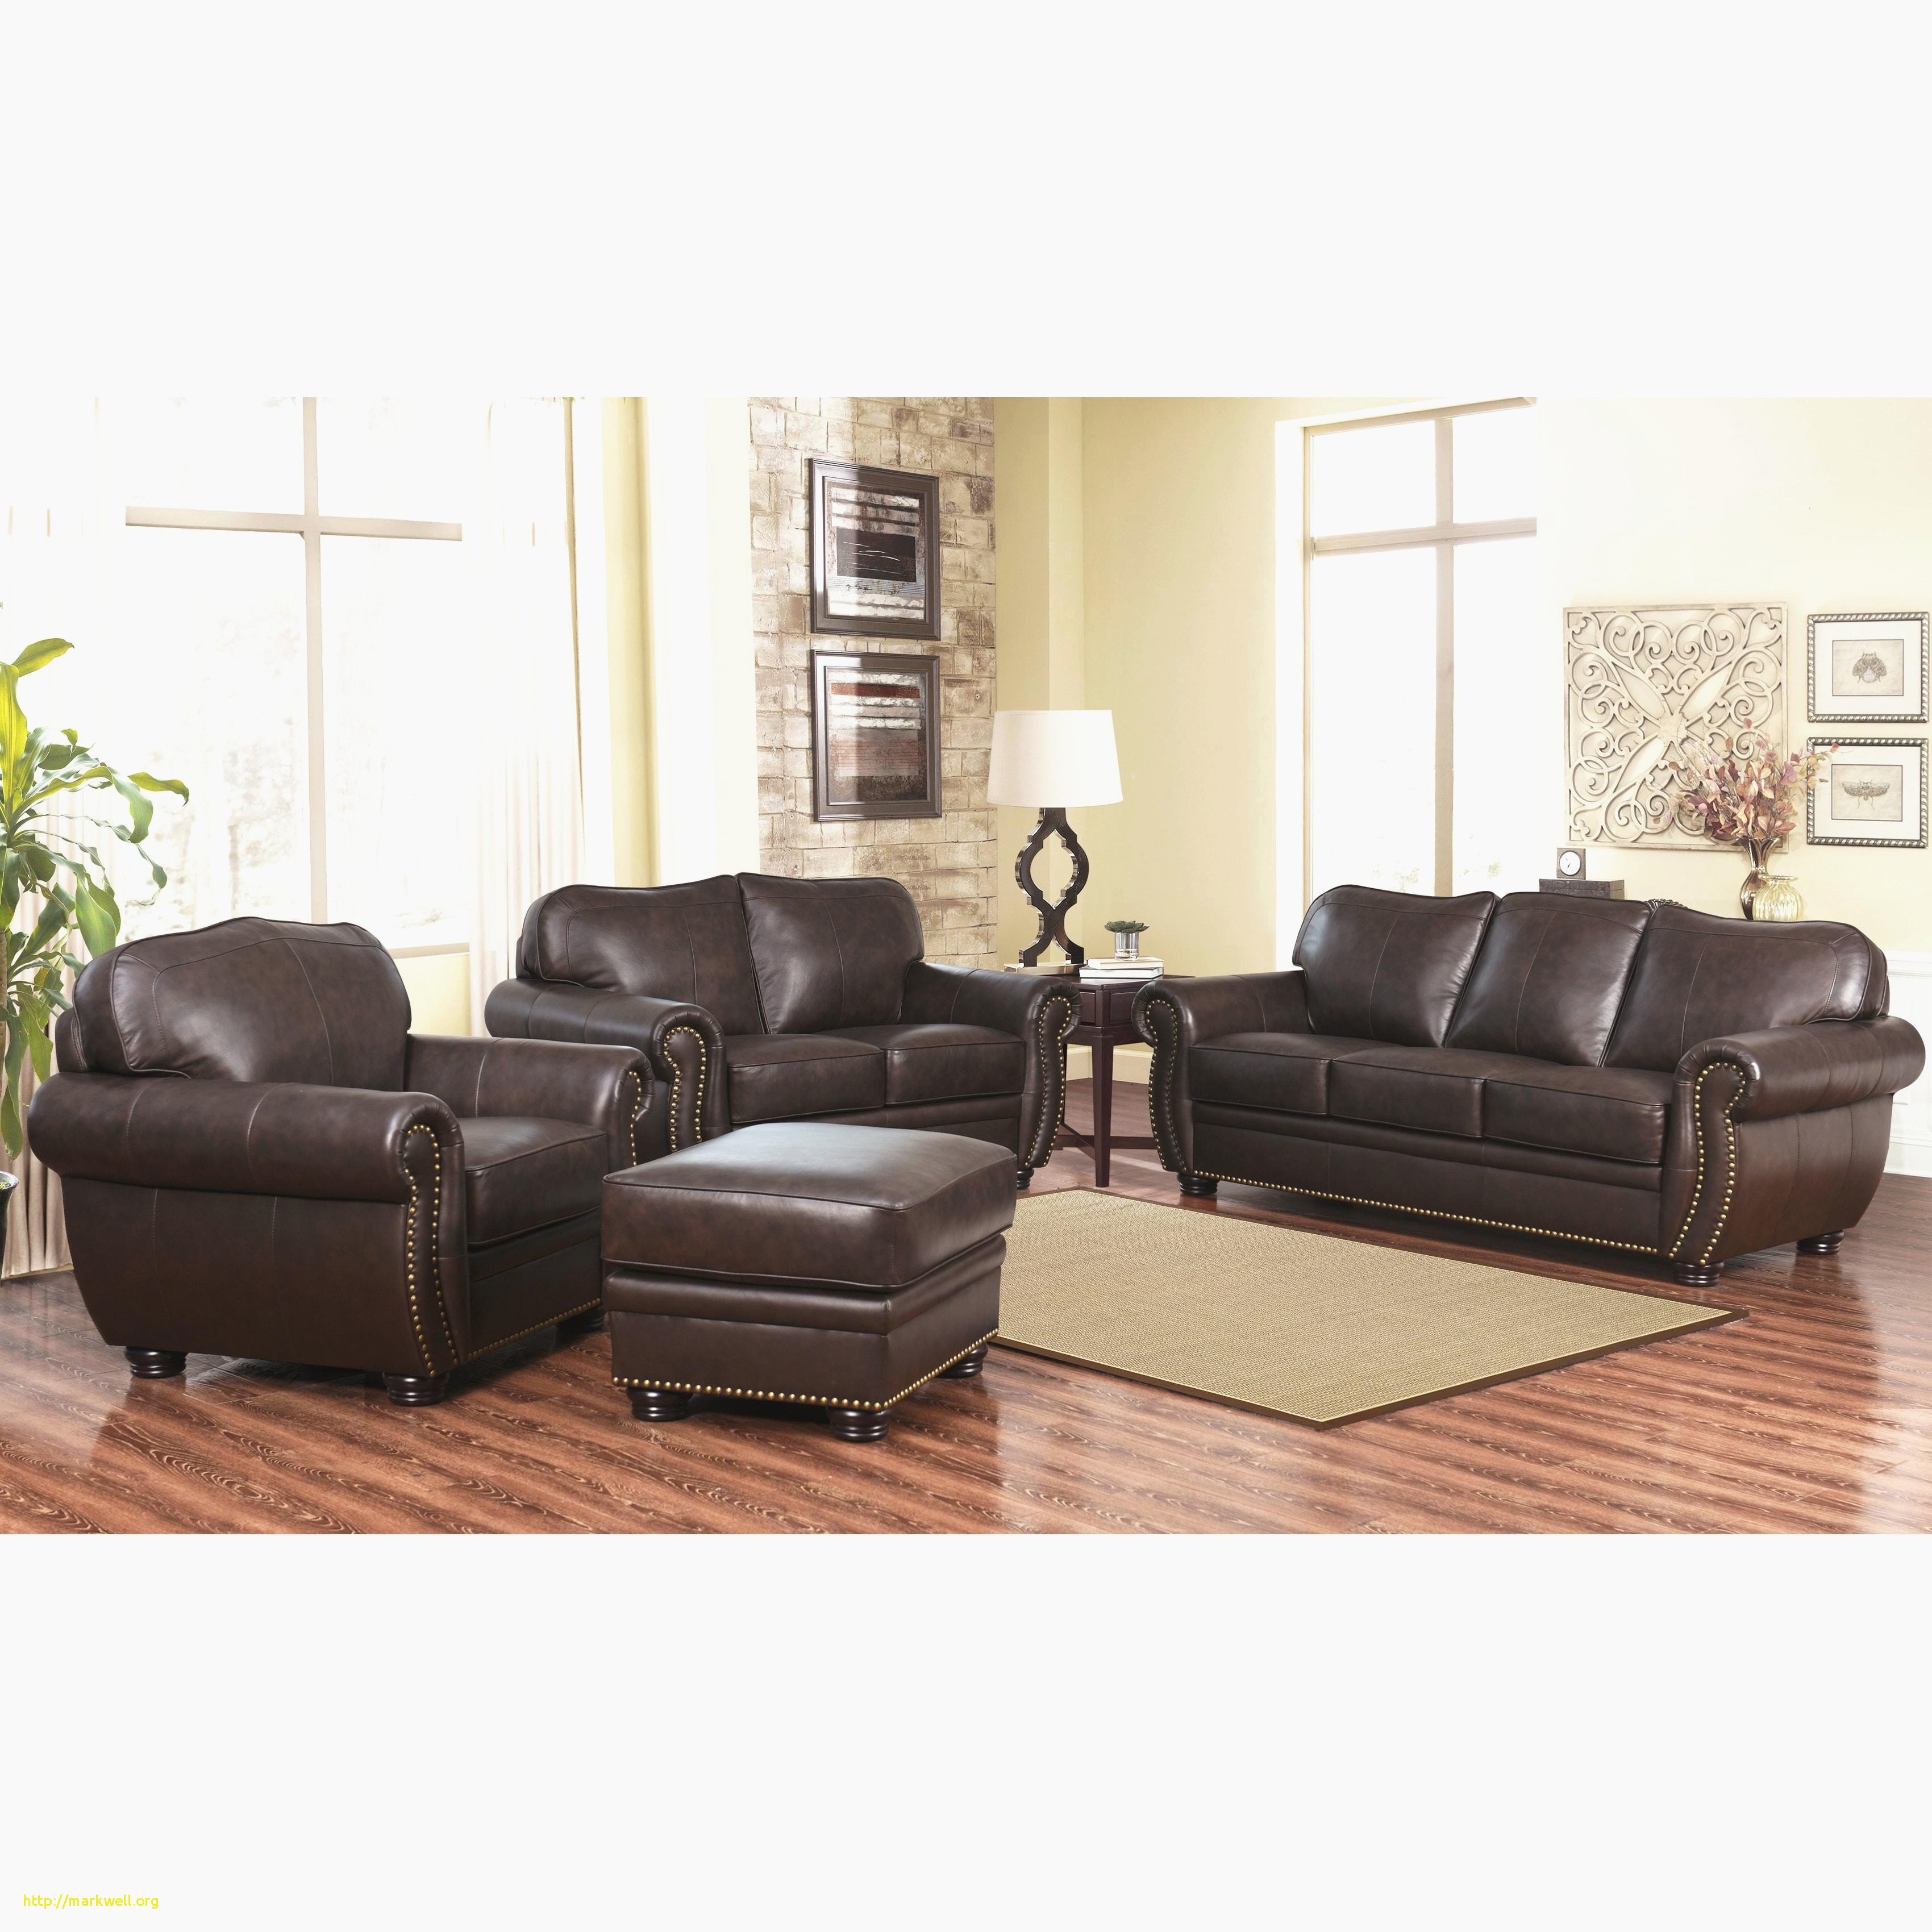 Small Recliners for Bedroom Fresh Fresh Walmart Dining Room Chairs